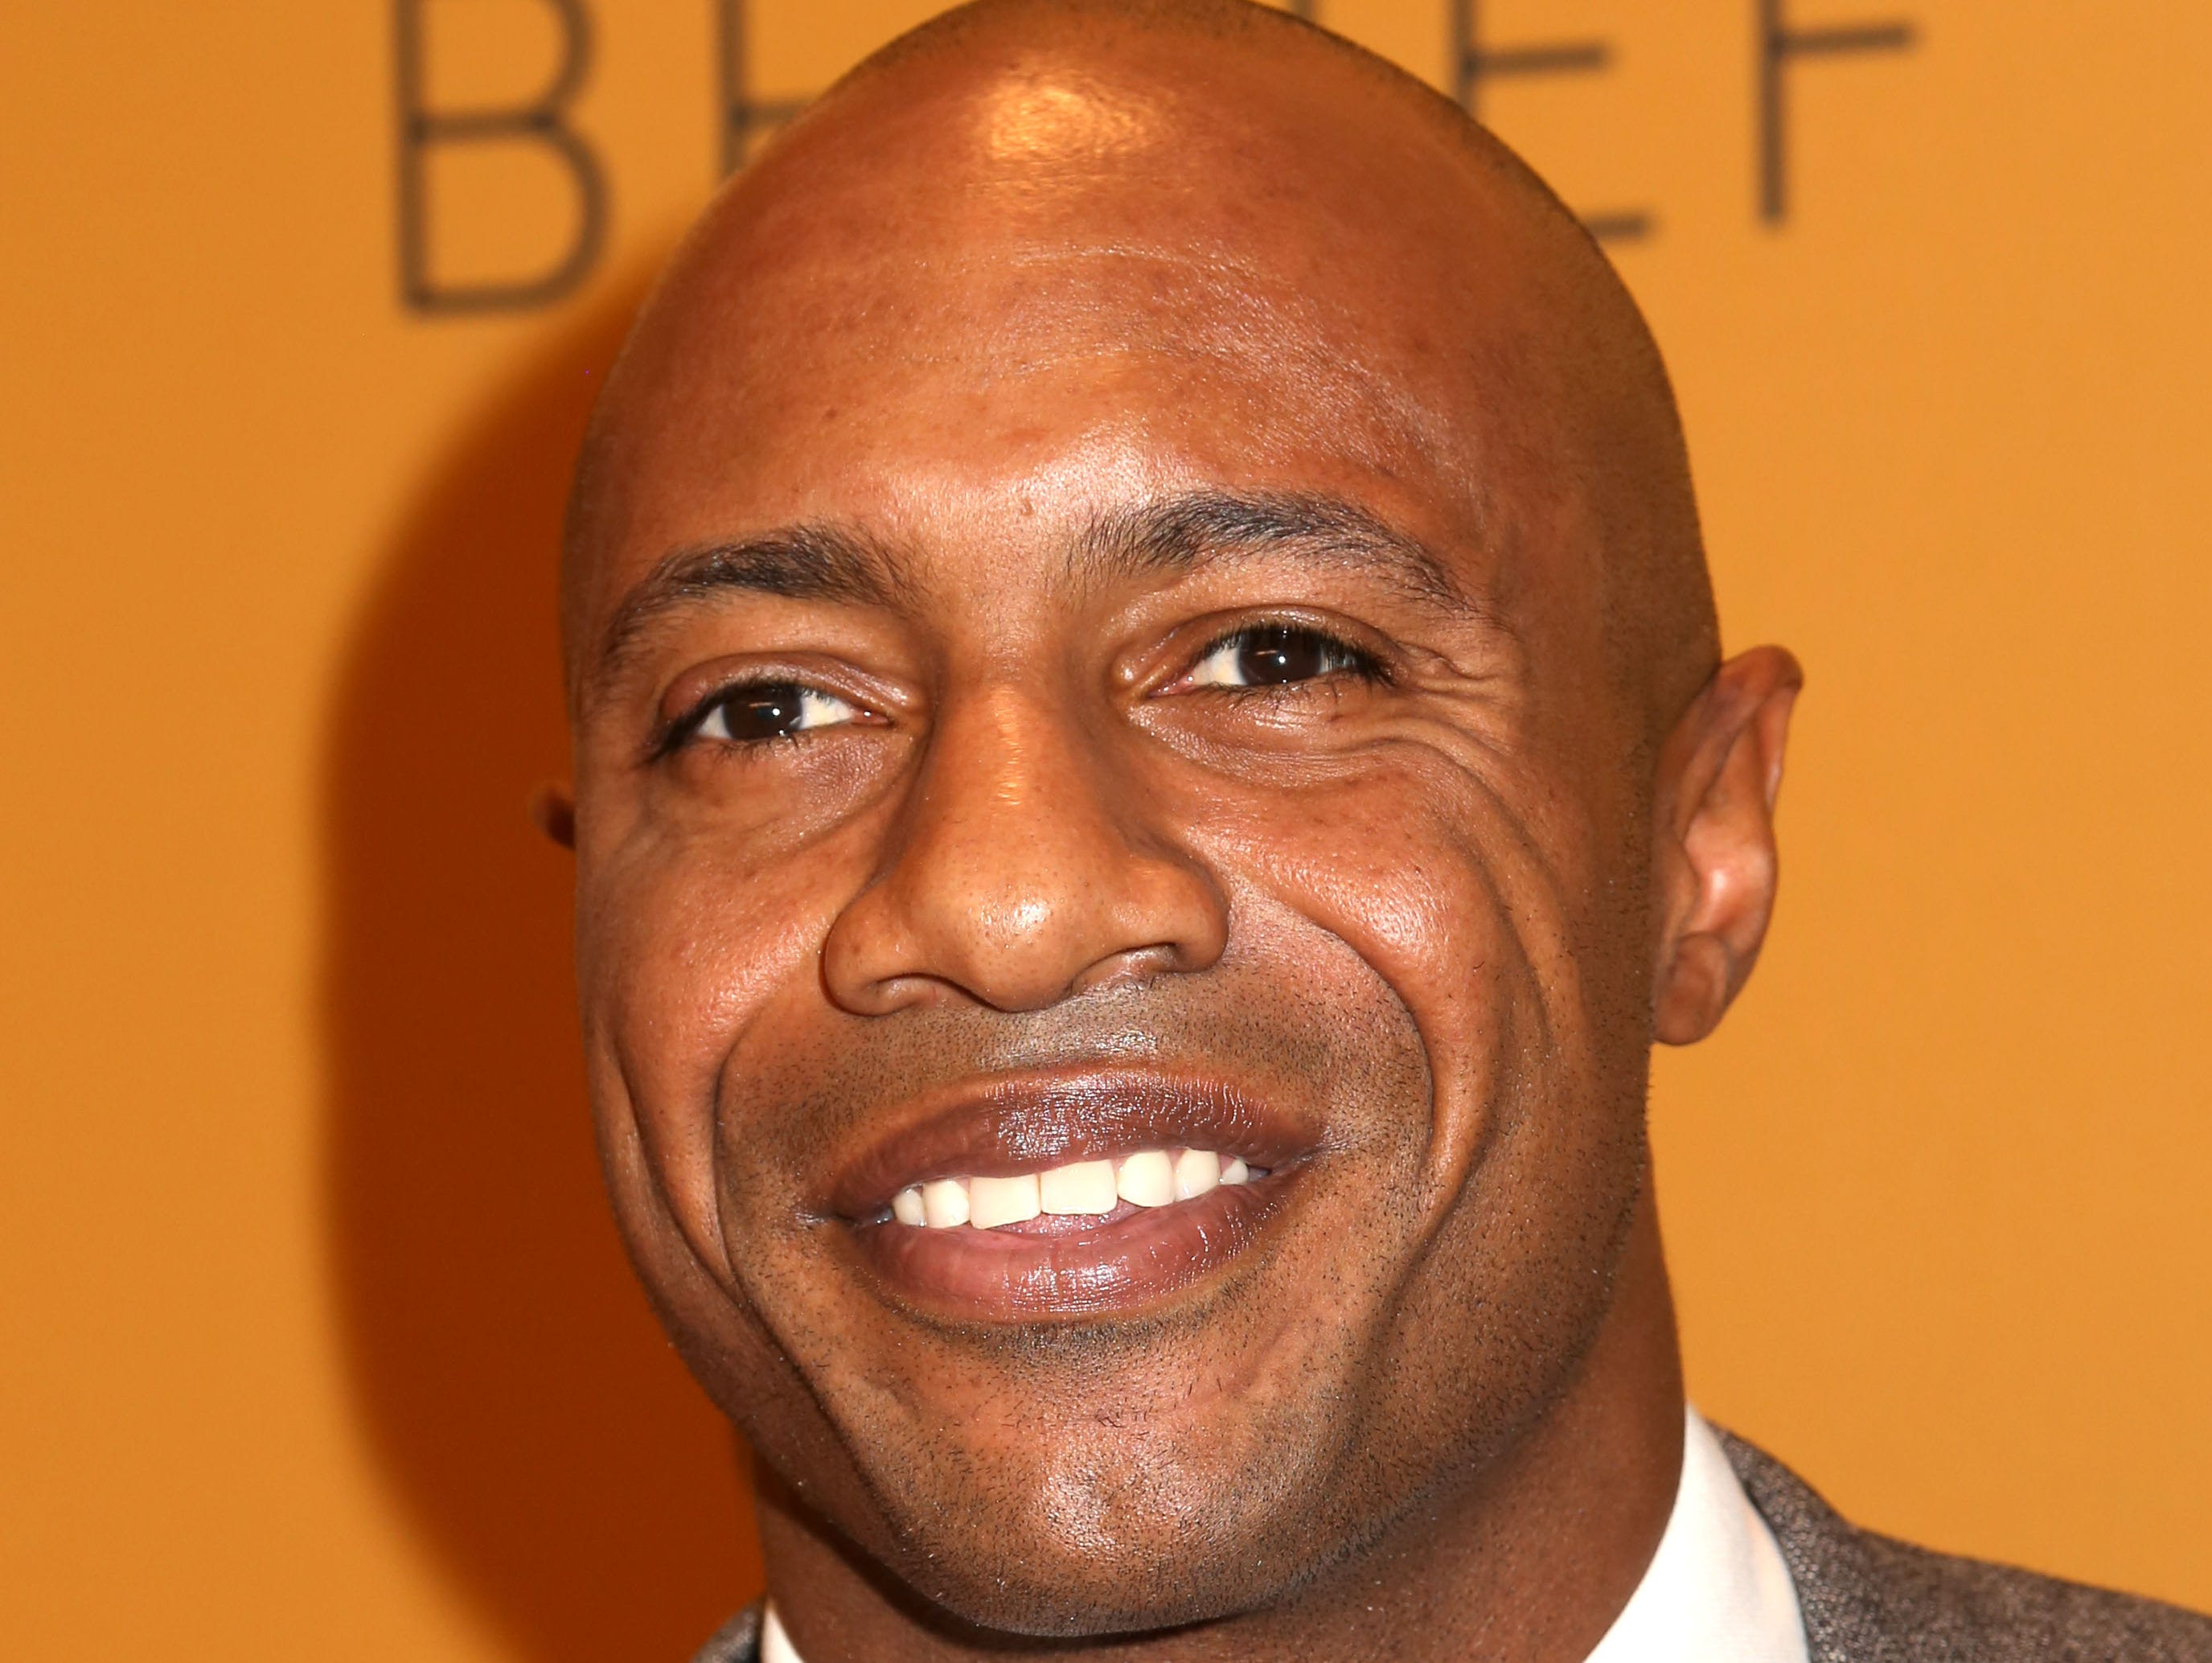 """Jay Williams attends the premiere of the Oprah Winfrey Network's (OWN) documentary series """"Belief"""", at The TimesCenter on Wednesday, Oct. 14, 2015, in New York. (Photo by Greg Allen/Invision/AP)"""